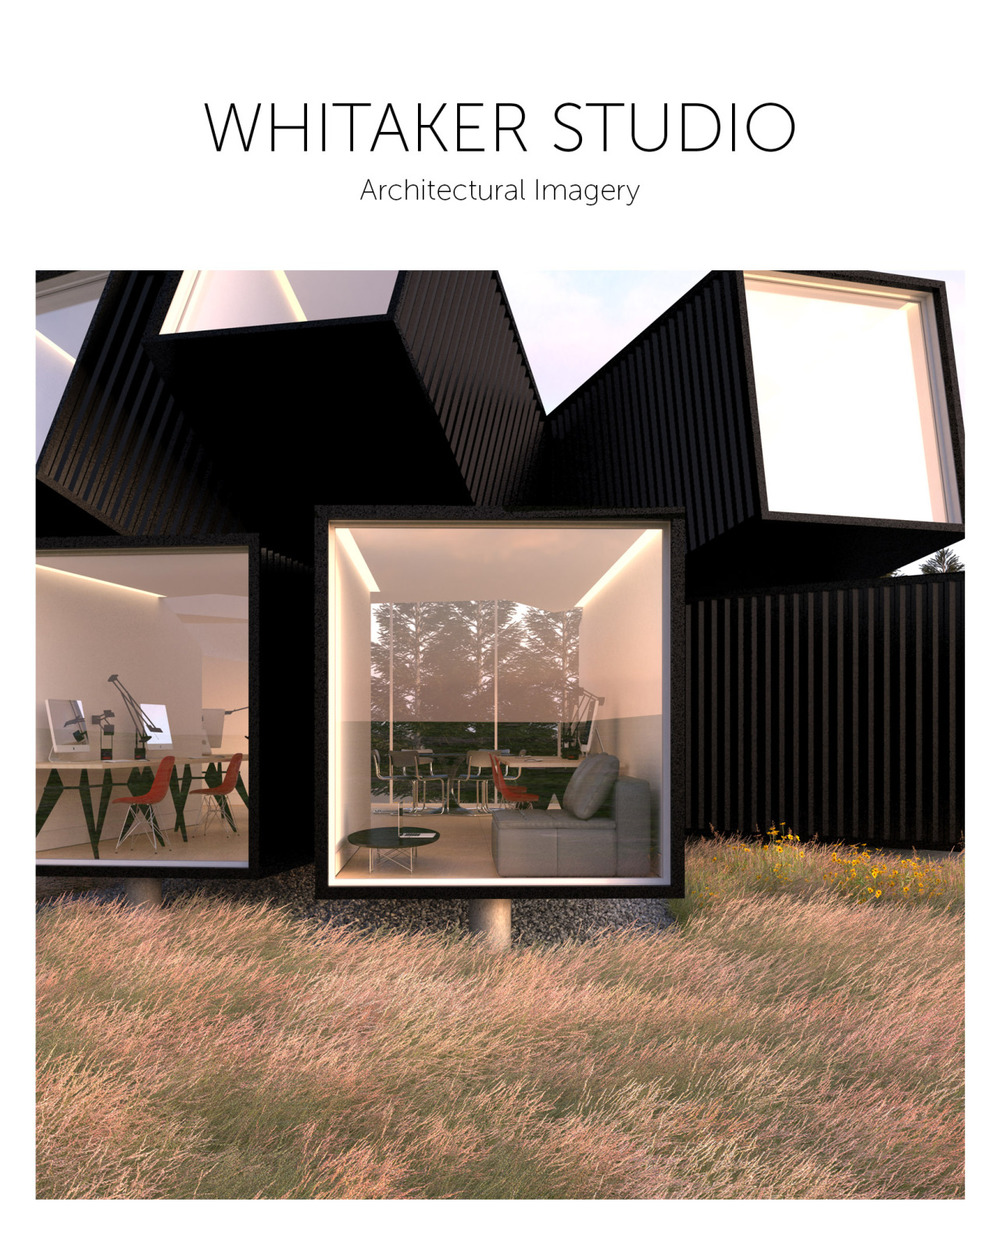 As of 16th February Whitaker Studio will be expanding into the virtual world of architectural visualisations, so that we can offer imagery from conception through to completion. A small but growing portfolio of my work is available on our  website  and price sheets are available on request.  Hopefully see you soon.